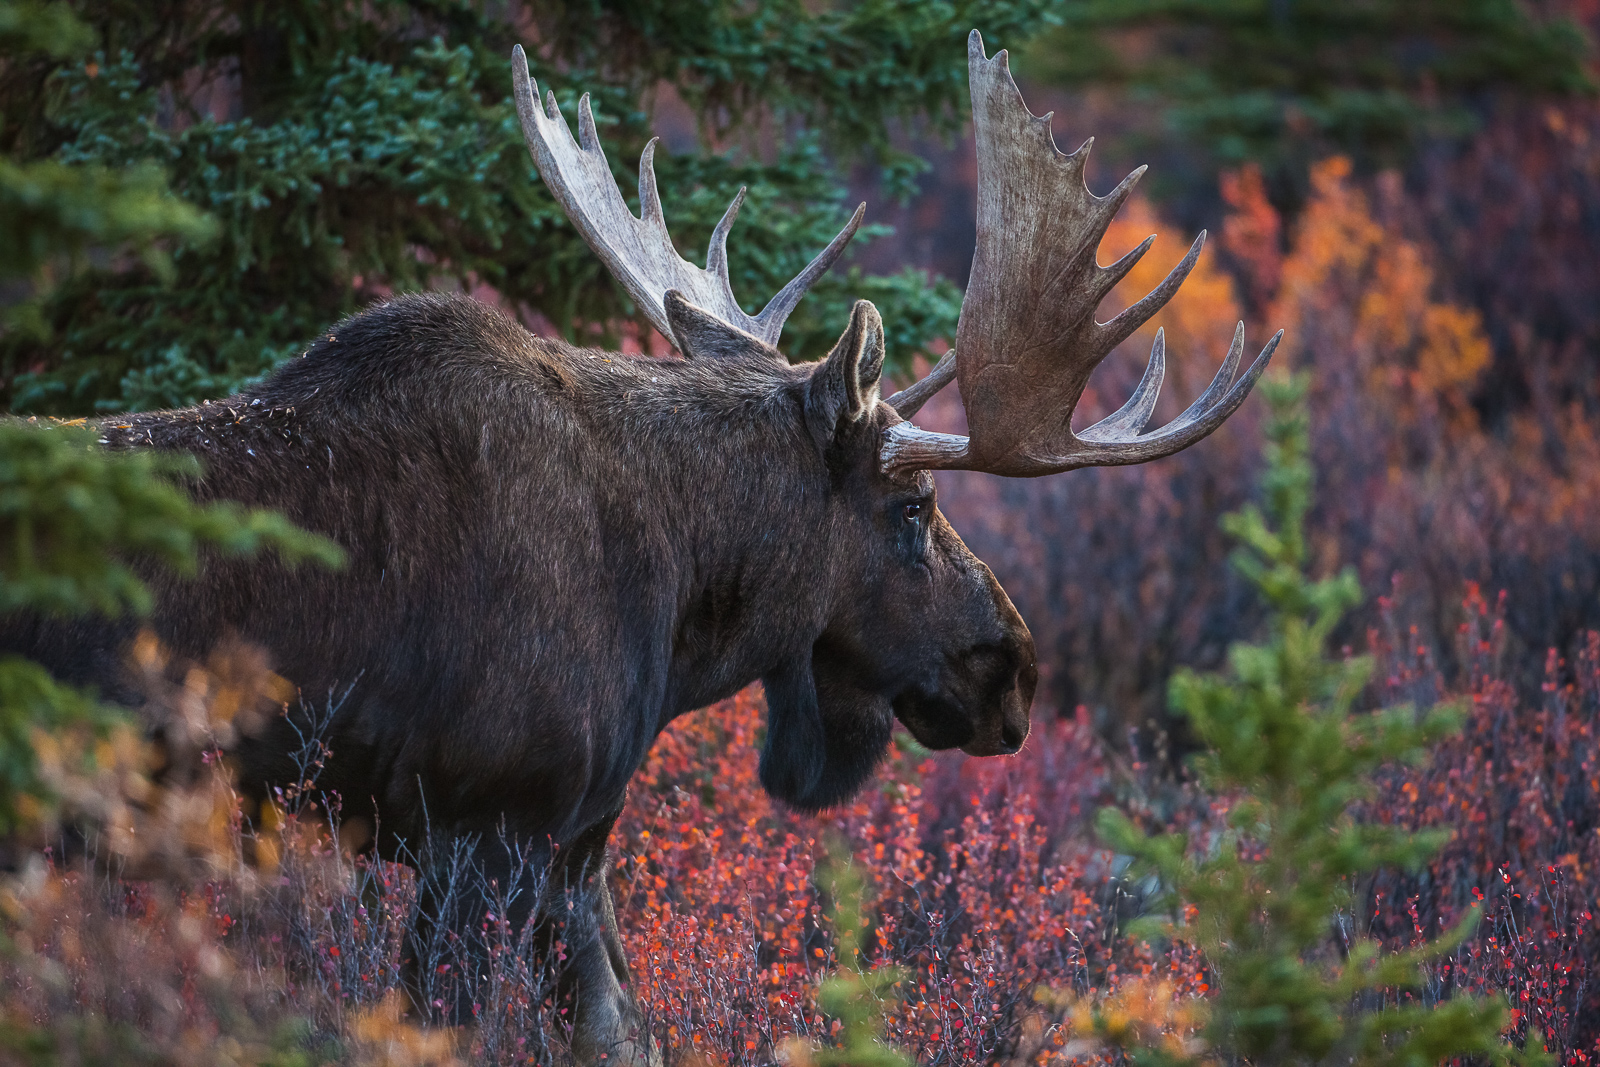 Amoung the Firs, Fall, Moose, Wildlife, Denali National Park, Alaska, Firs, Danger, Mating, photo